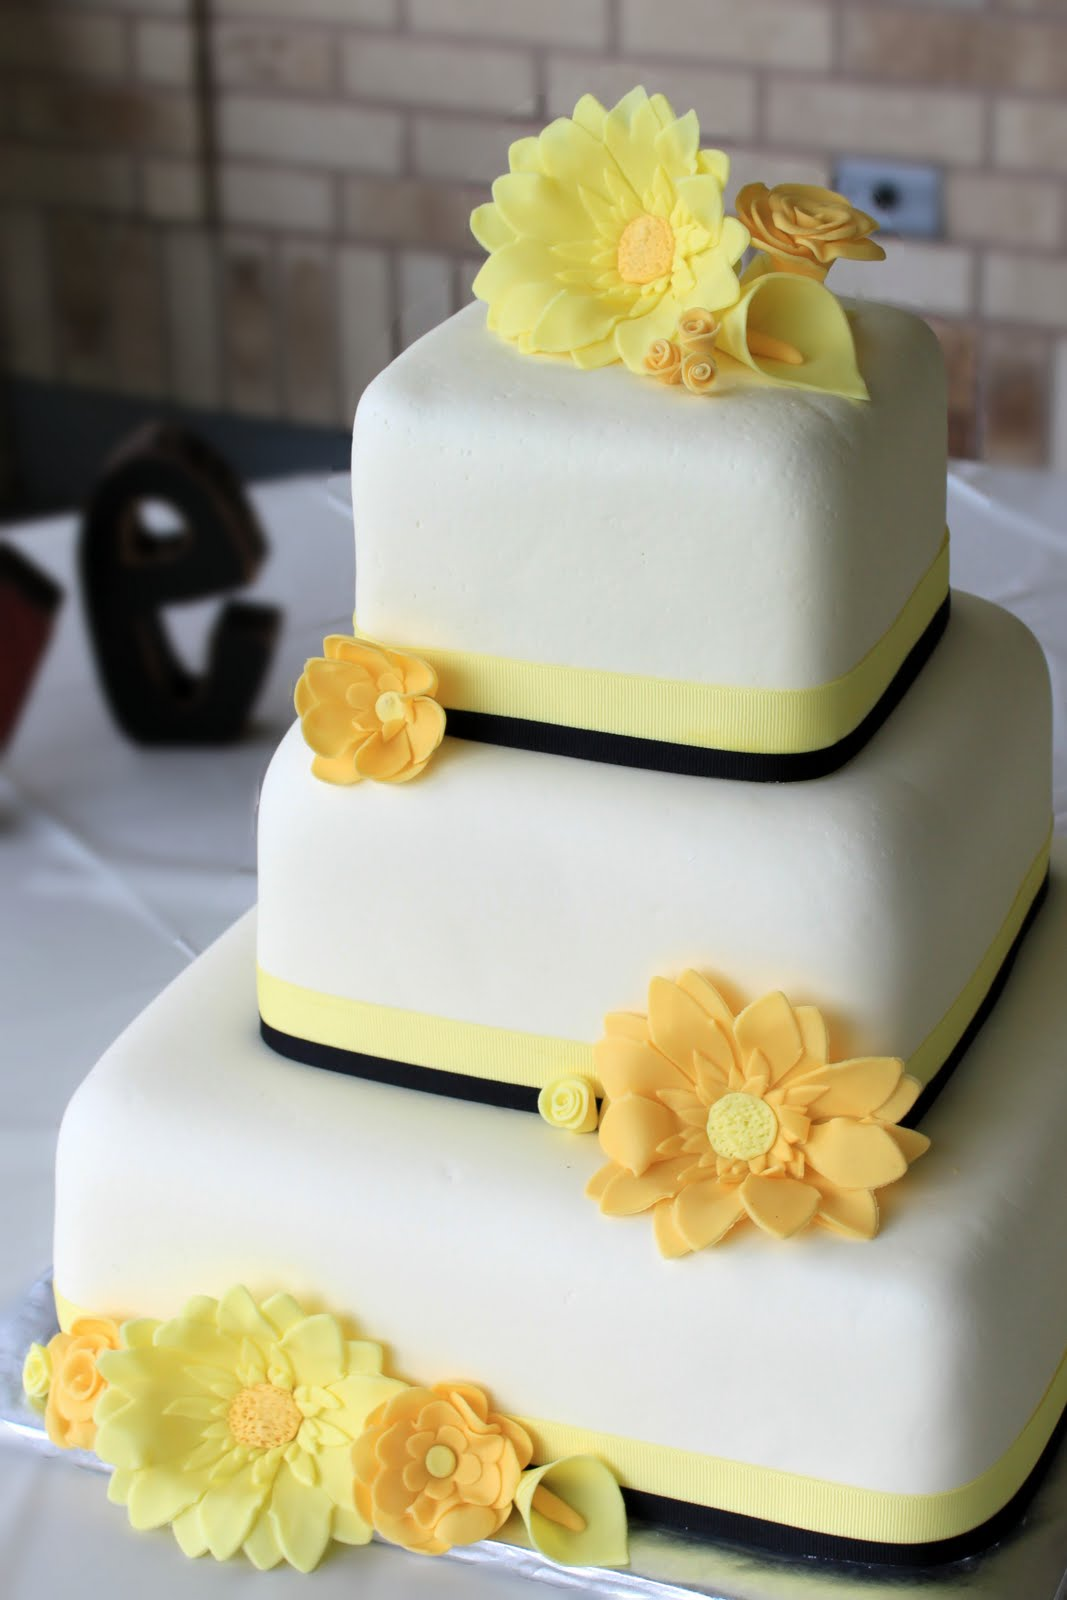 Tiered White Cake With Yellow Balls